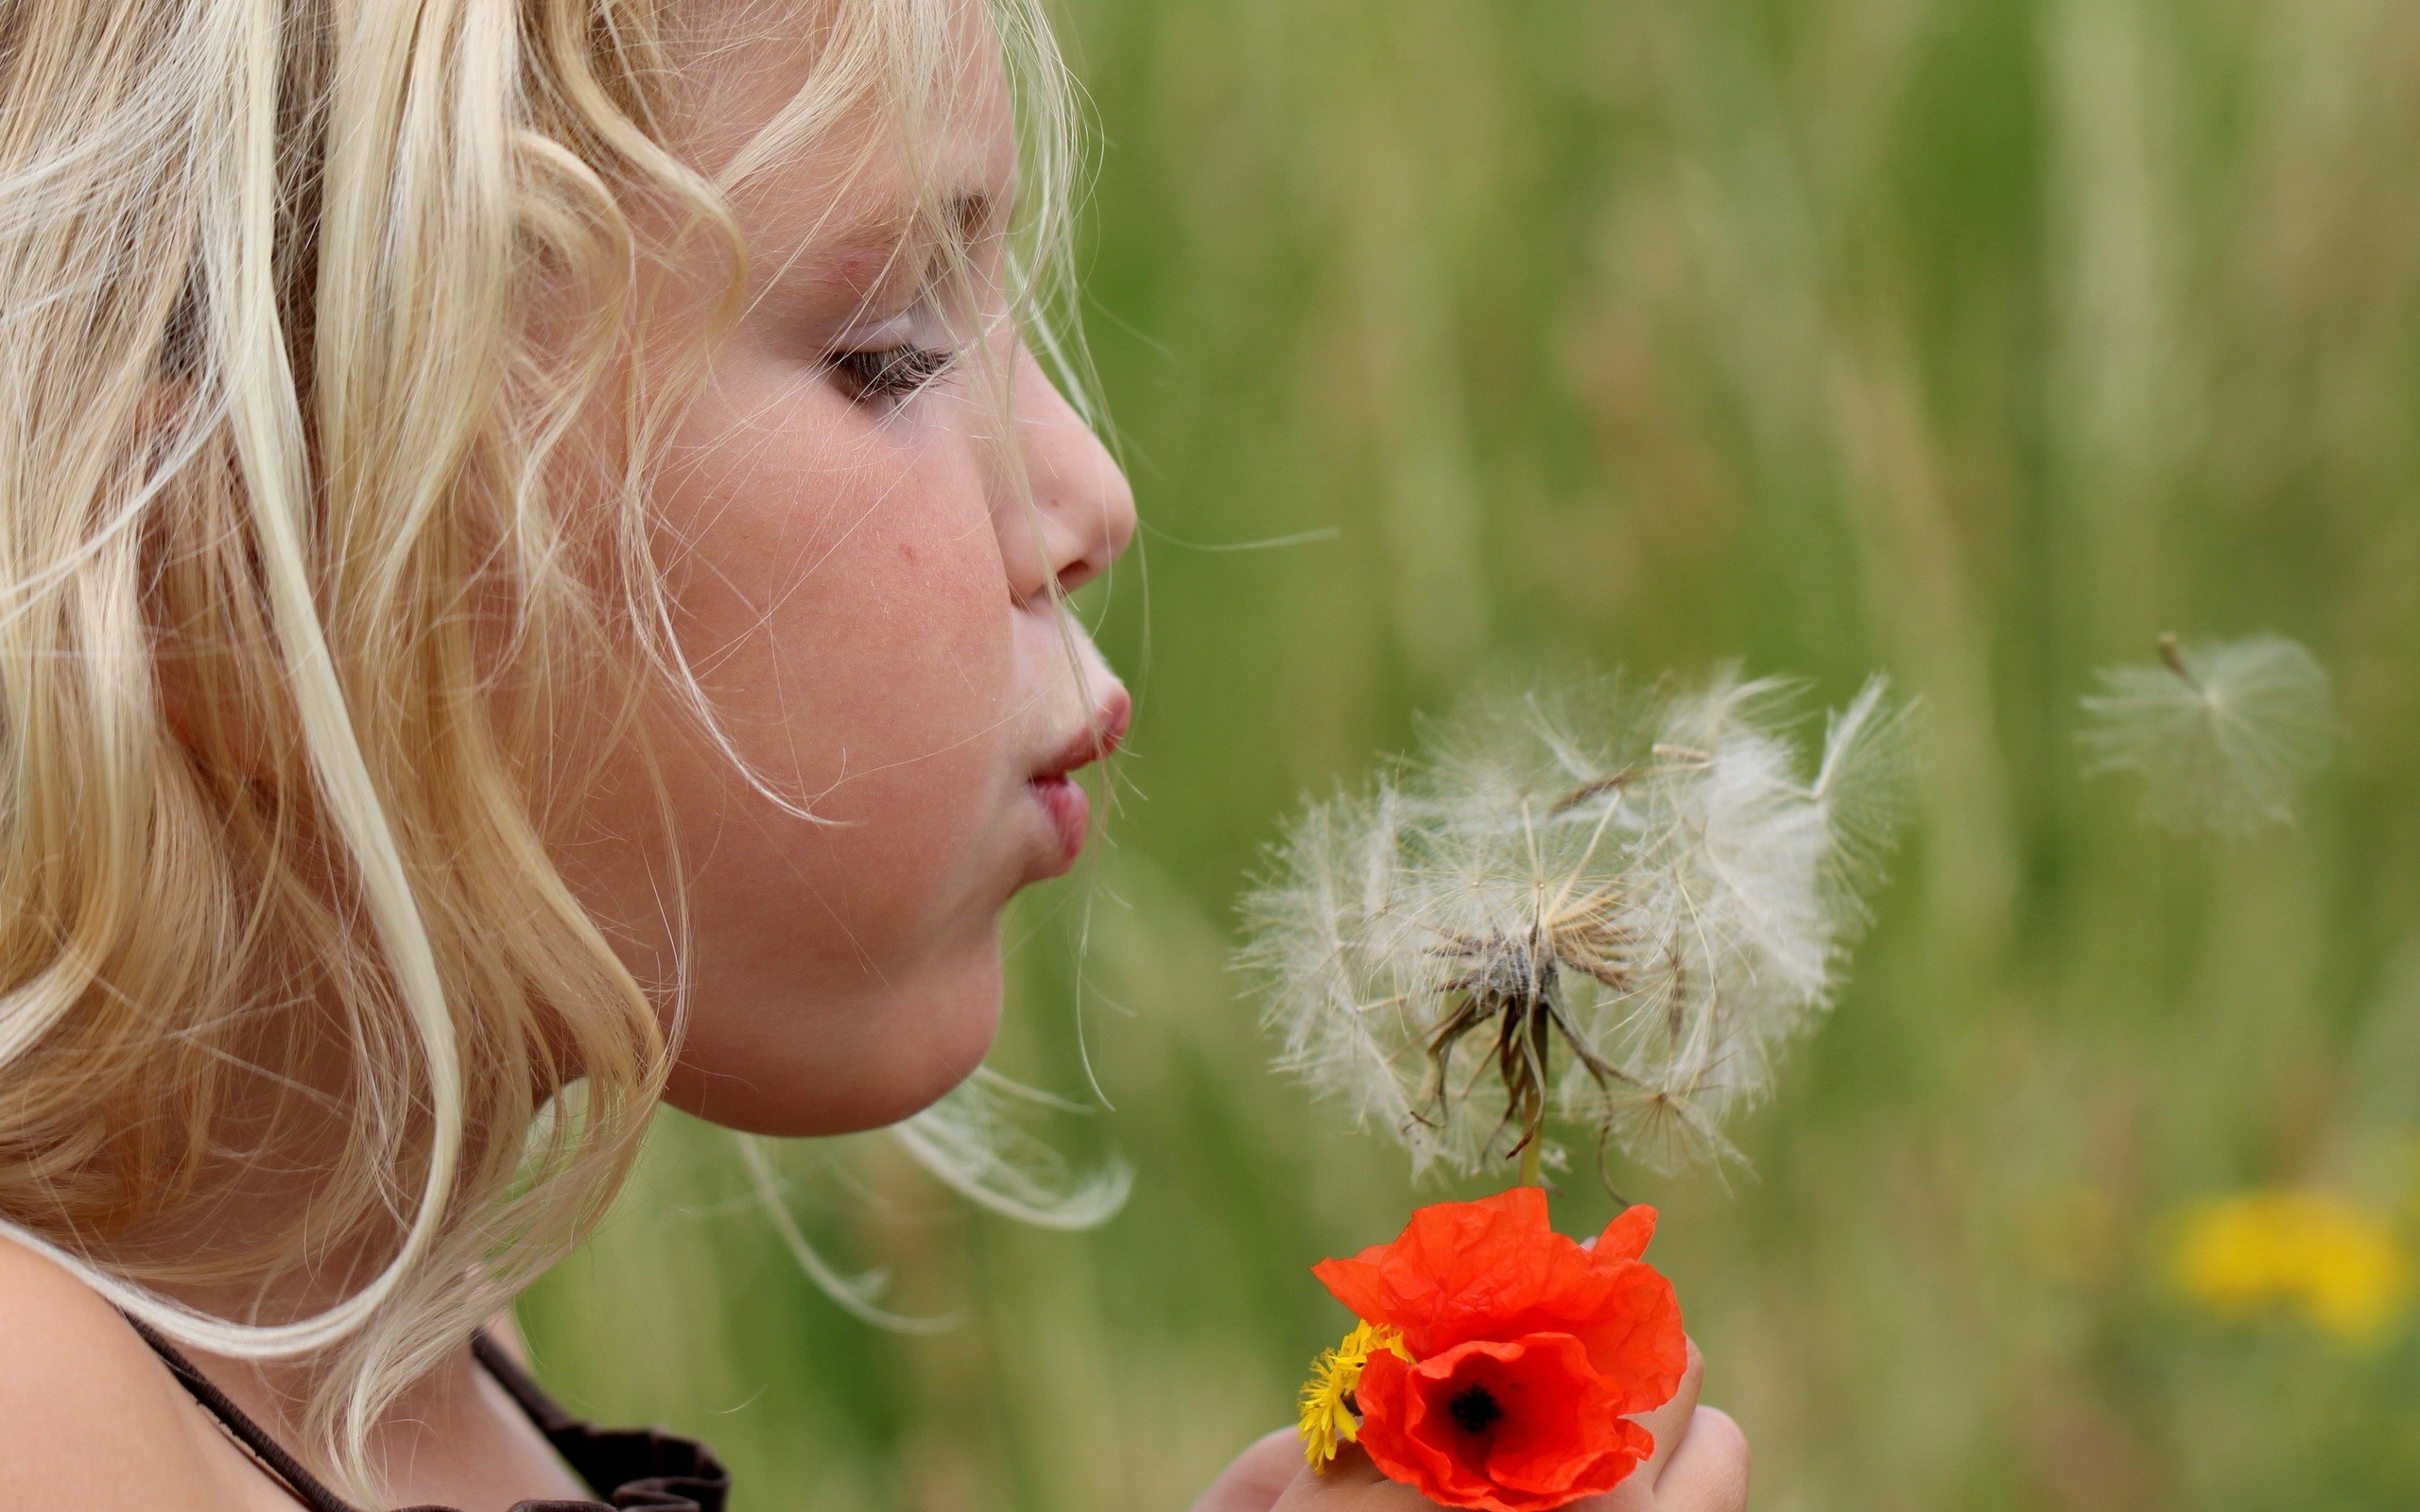 Res: 2560x1600, Girl blowing on a dandelion flower